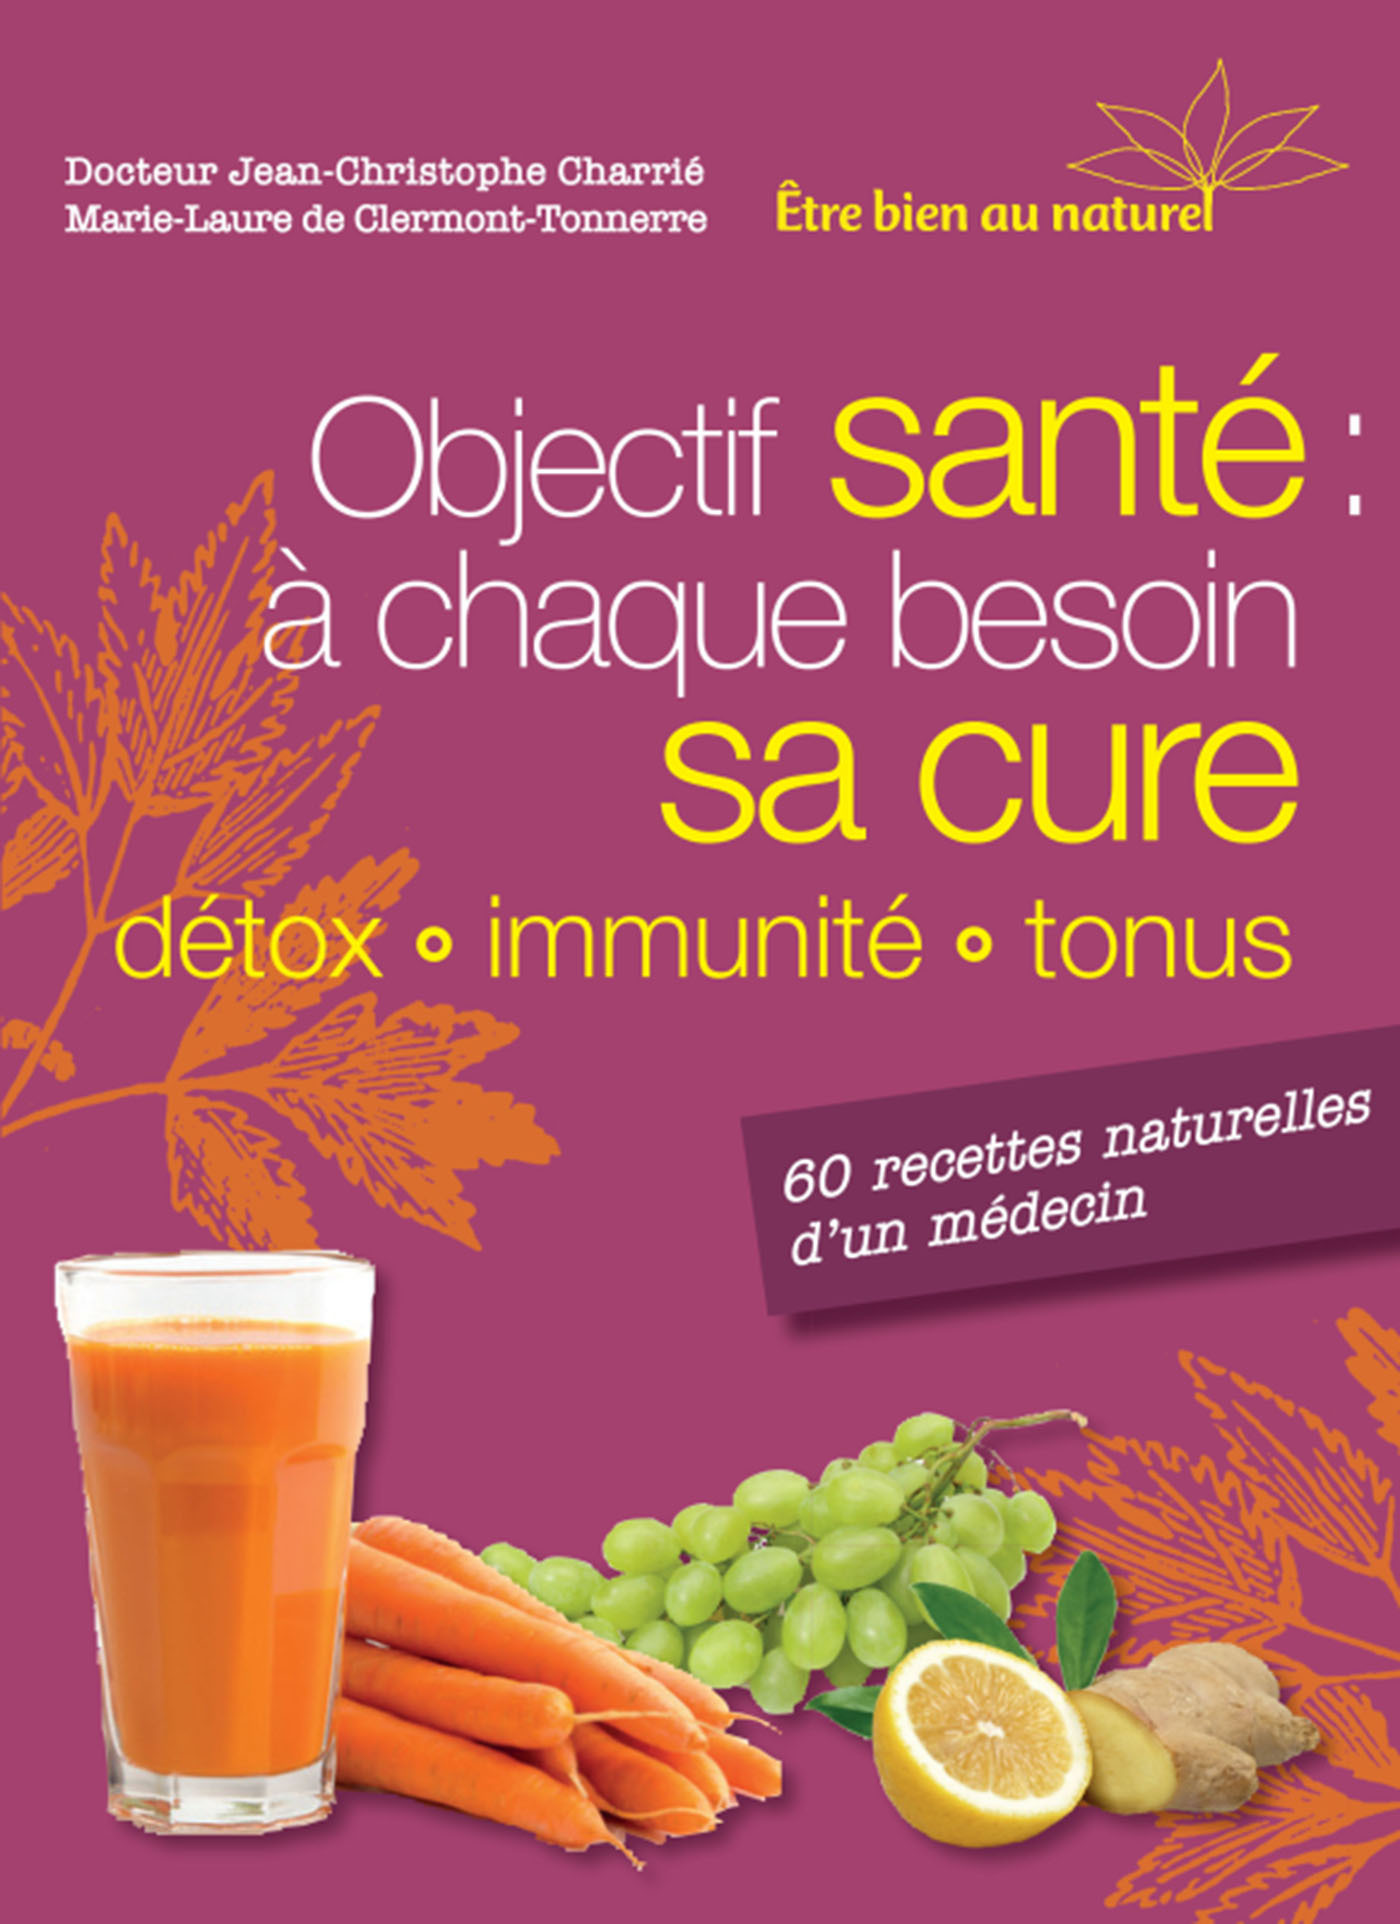 OBJECTIF SANTE A CHAQUE BESOIN SA CURE